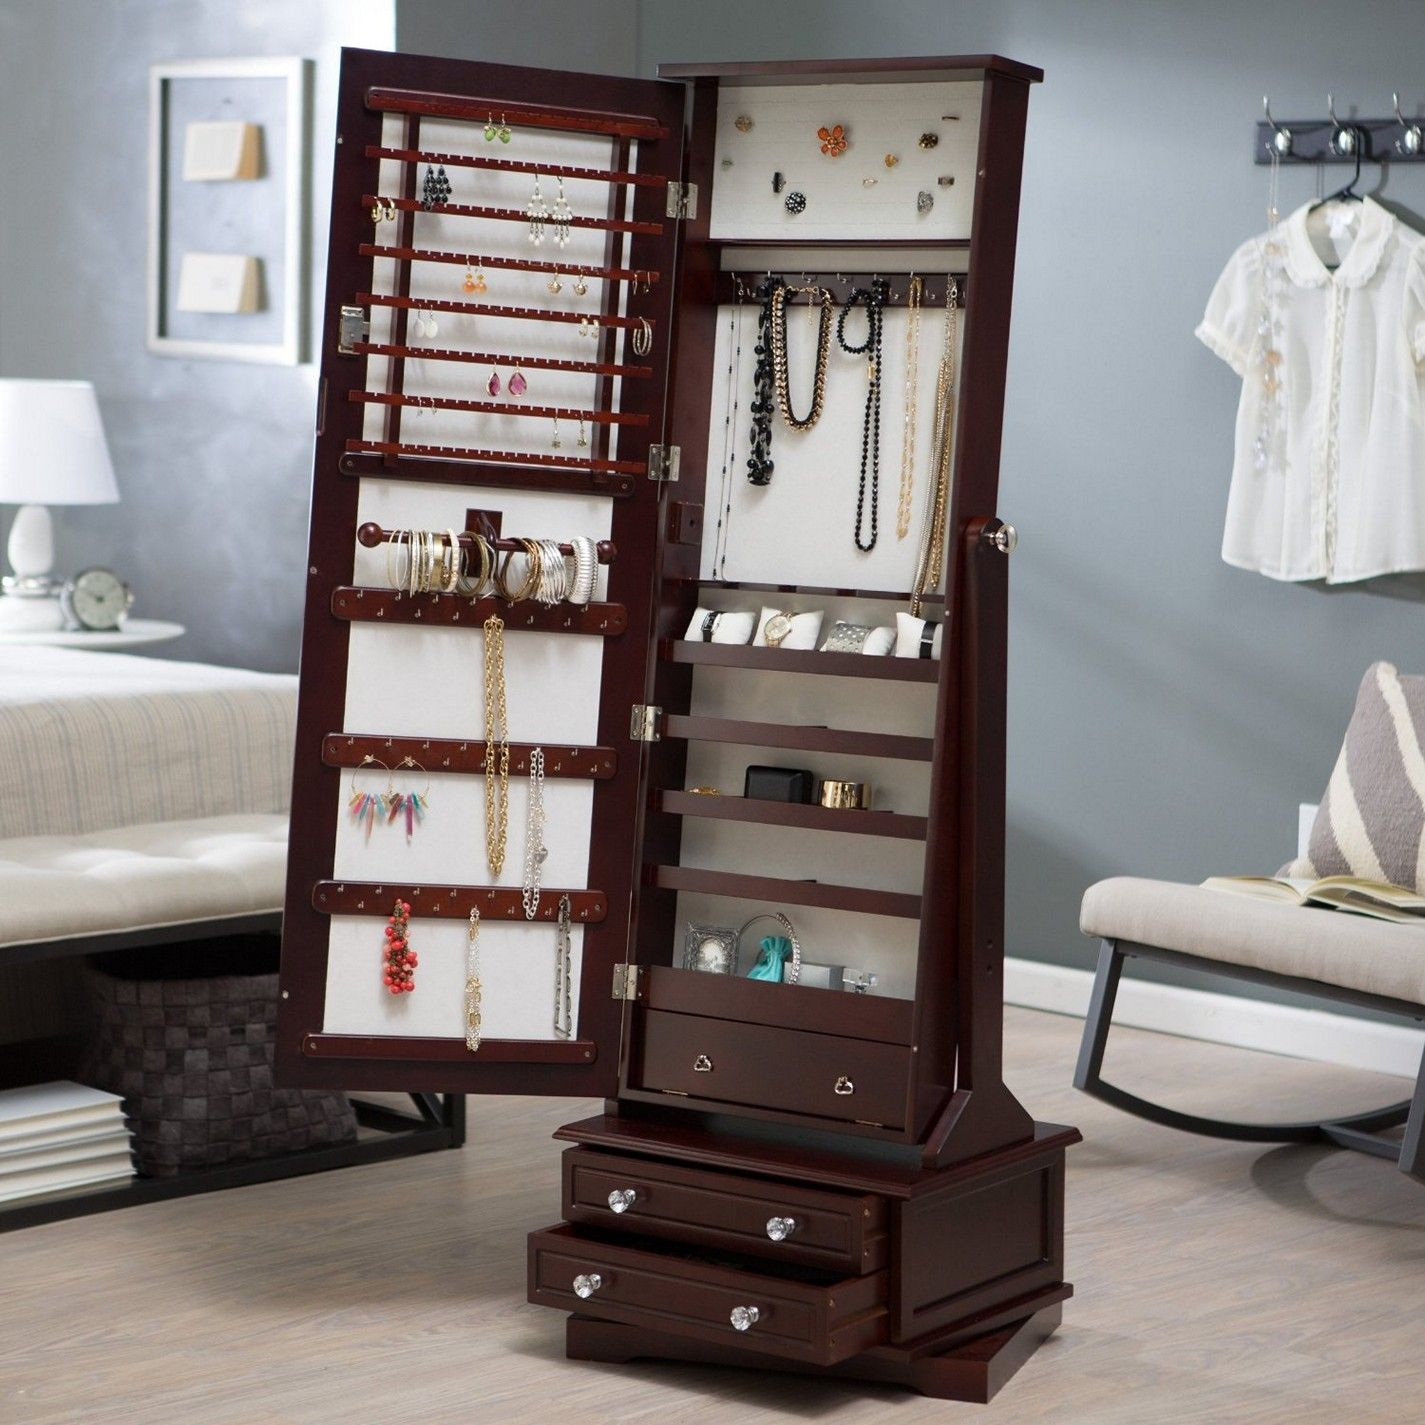 Best Drawer Jewelry Storage Ideas organizao Pinterest